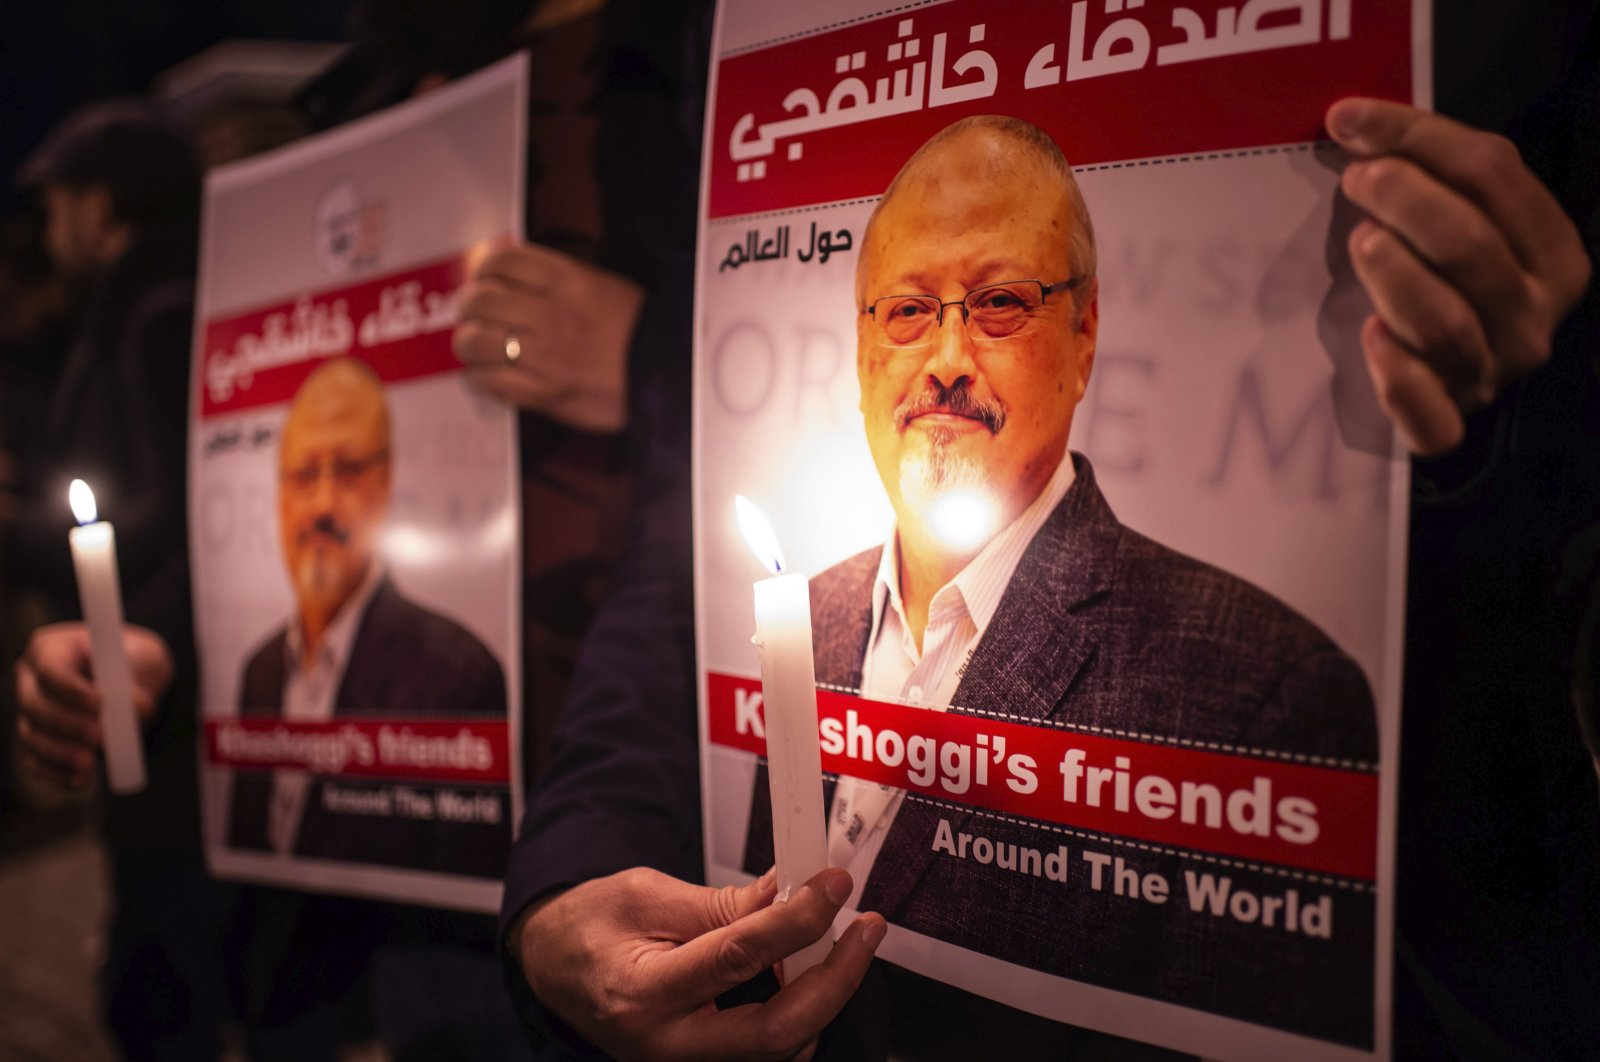 People hold posters of Saudi journalist Jamal Khashoggi and light candles during a gathering outside Saudi Arabia's Consulate in Istanbul, Turkey, Oct. 25, 2018. (AFP Photo)